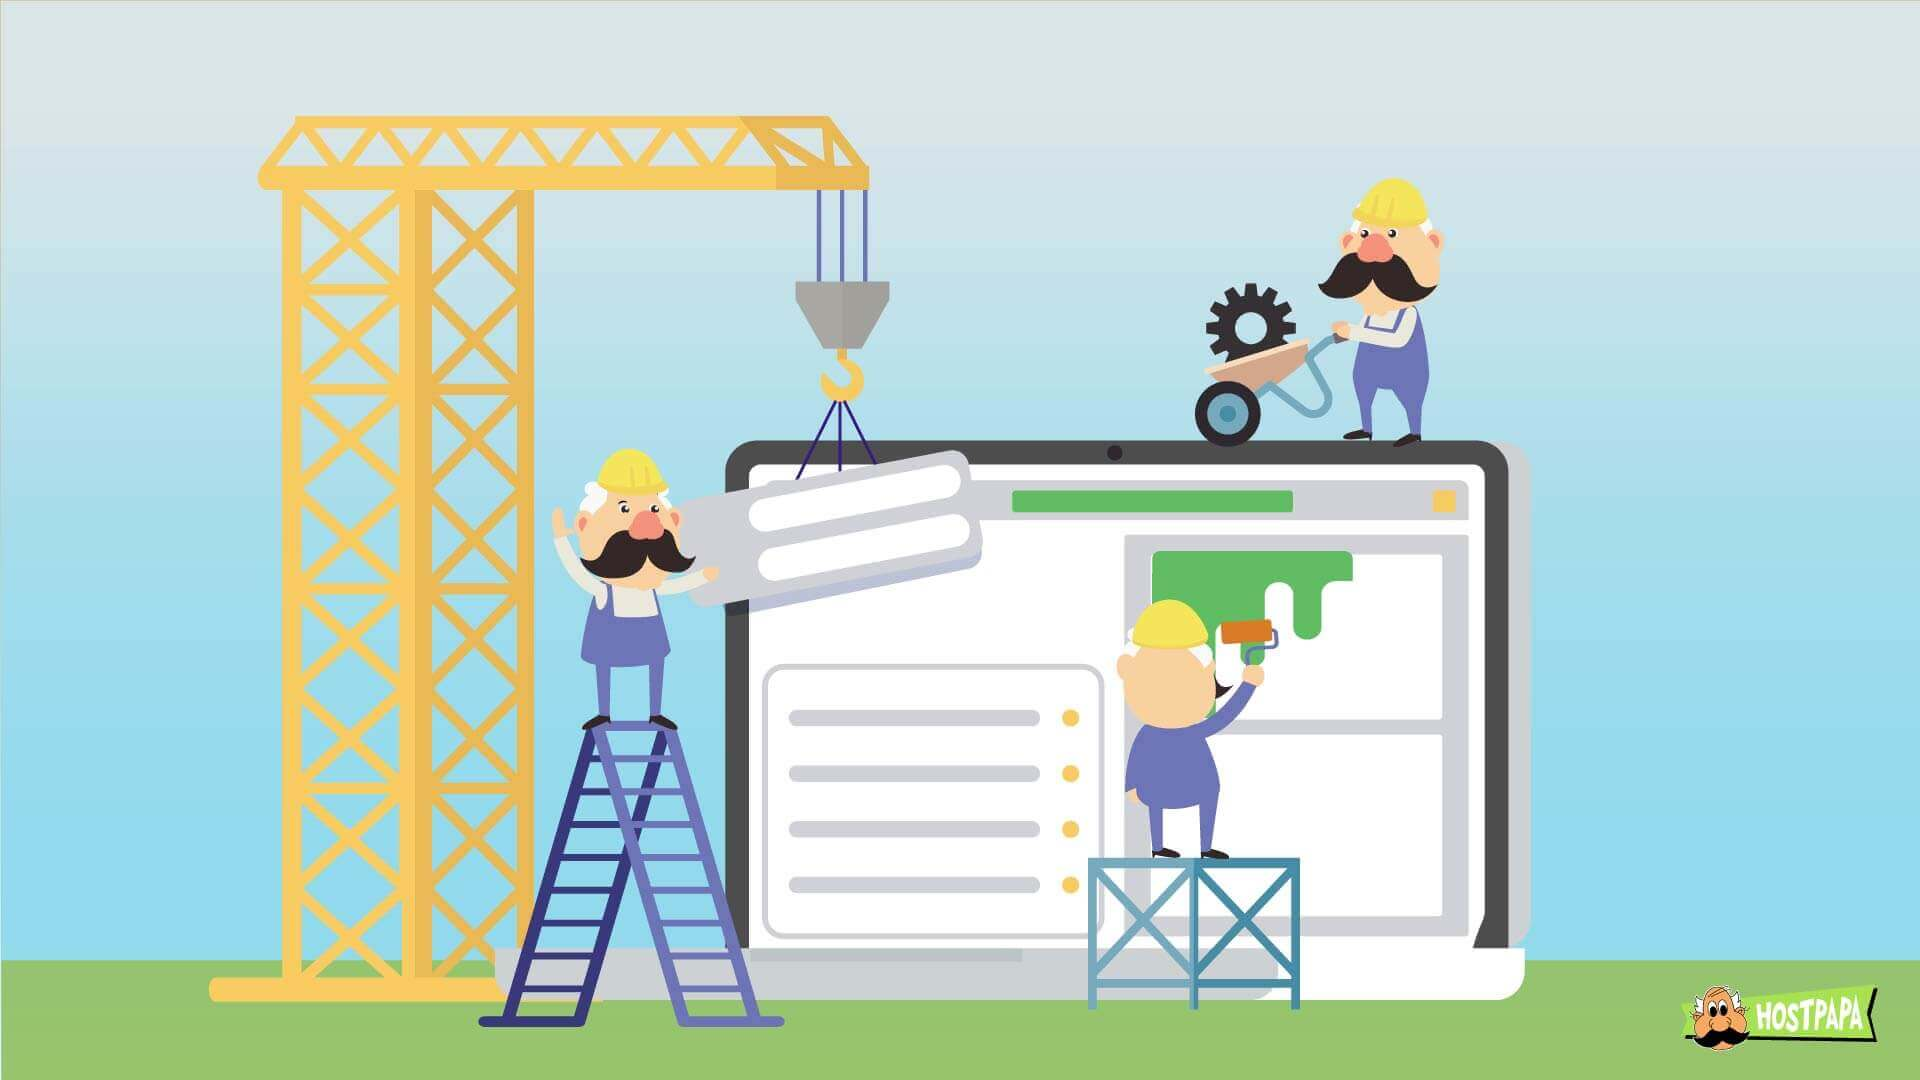 OCT Website Builder: All the Tools You Need for a DIY Website Project